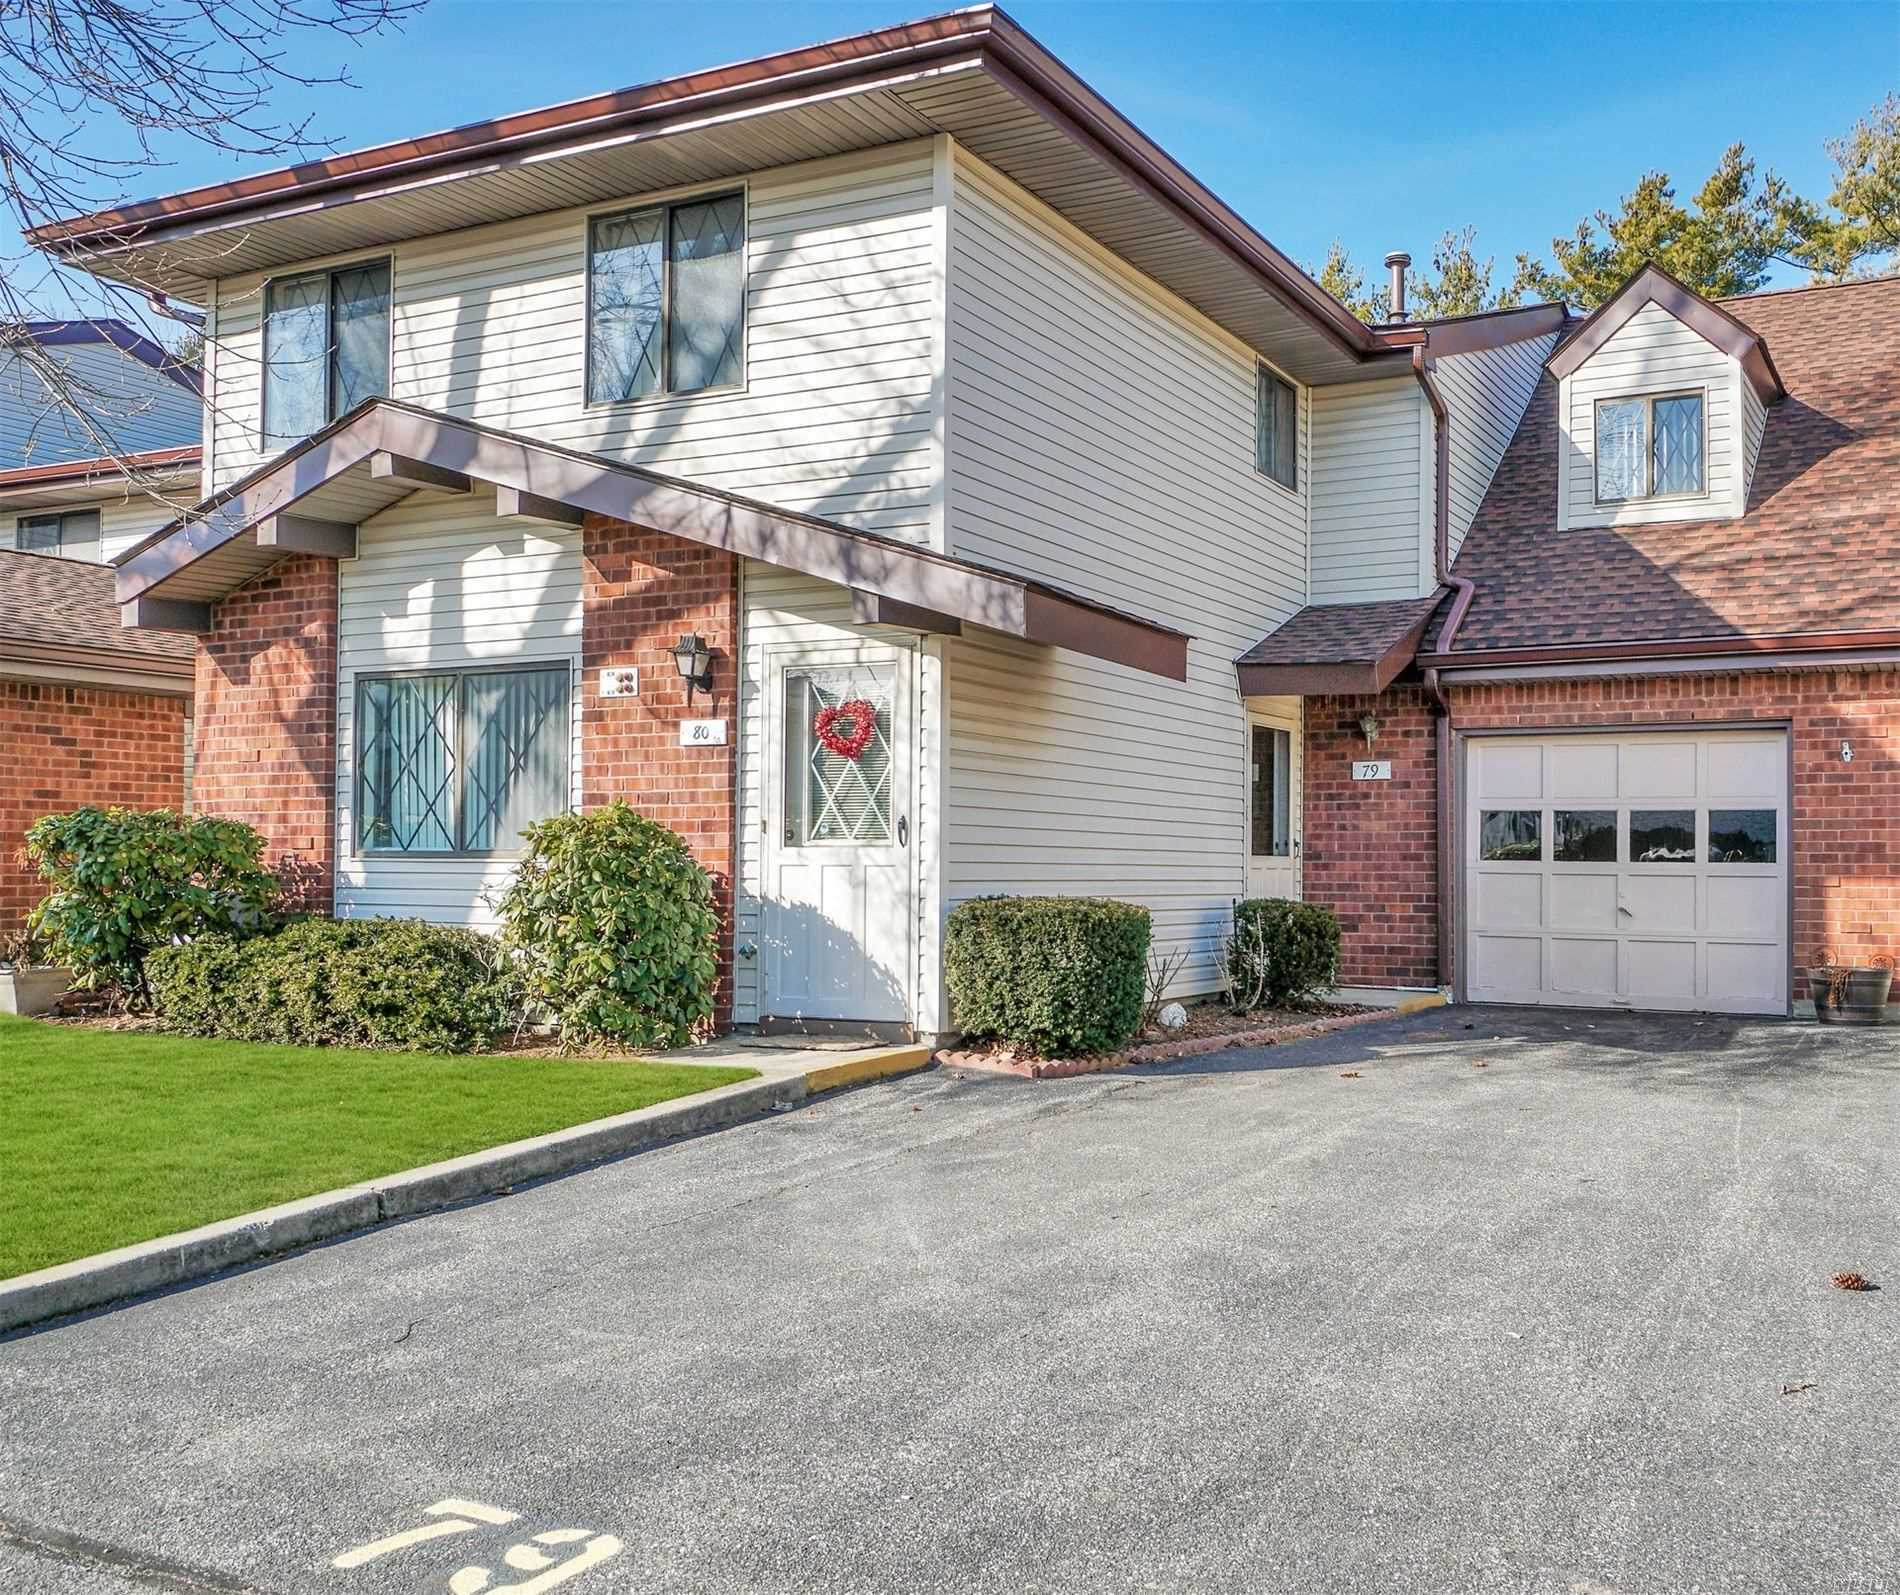 79 Cambridge Dr, 79 - Copiague, New York